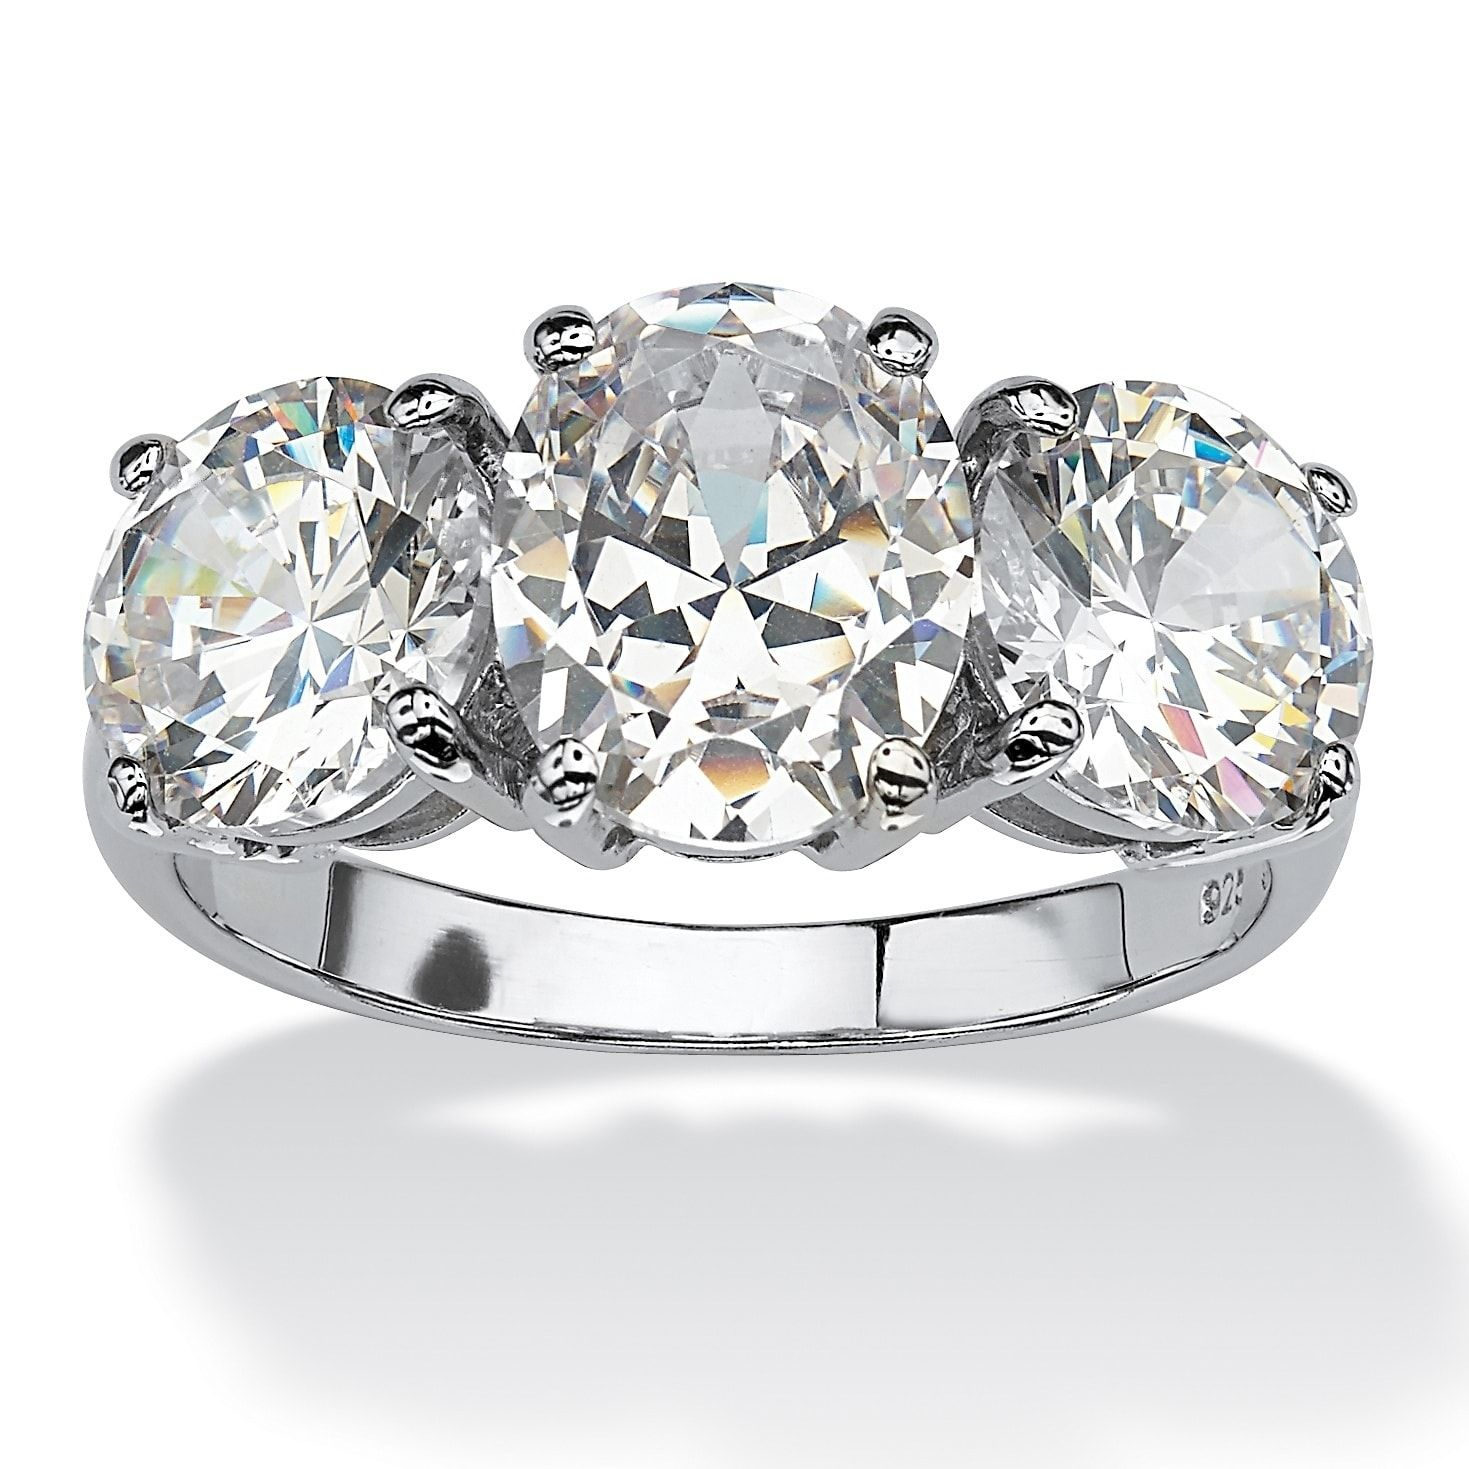 Our Best Rings Deals Cubic Zirconia Jewelry Sterling Silver Jewelry Cubic Zirconia Engagement Rings